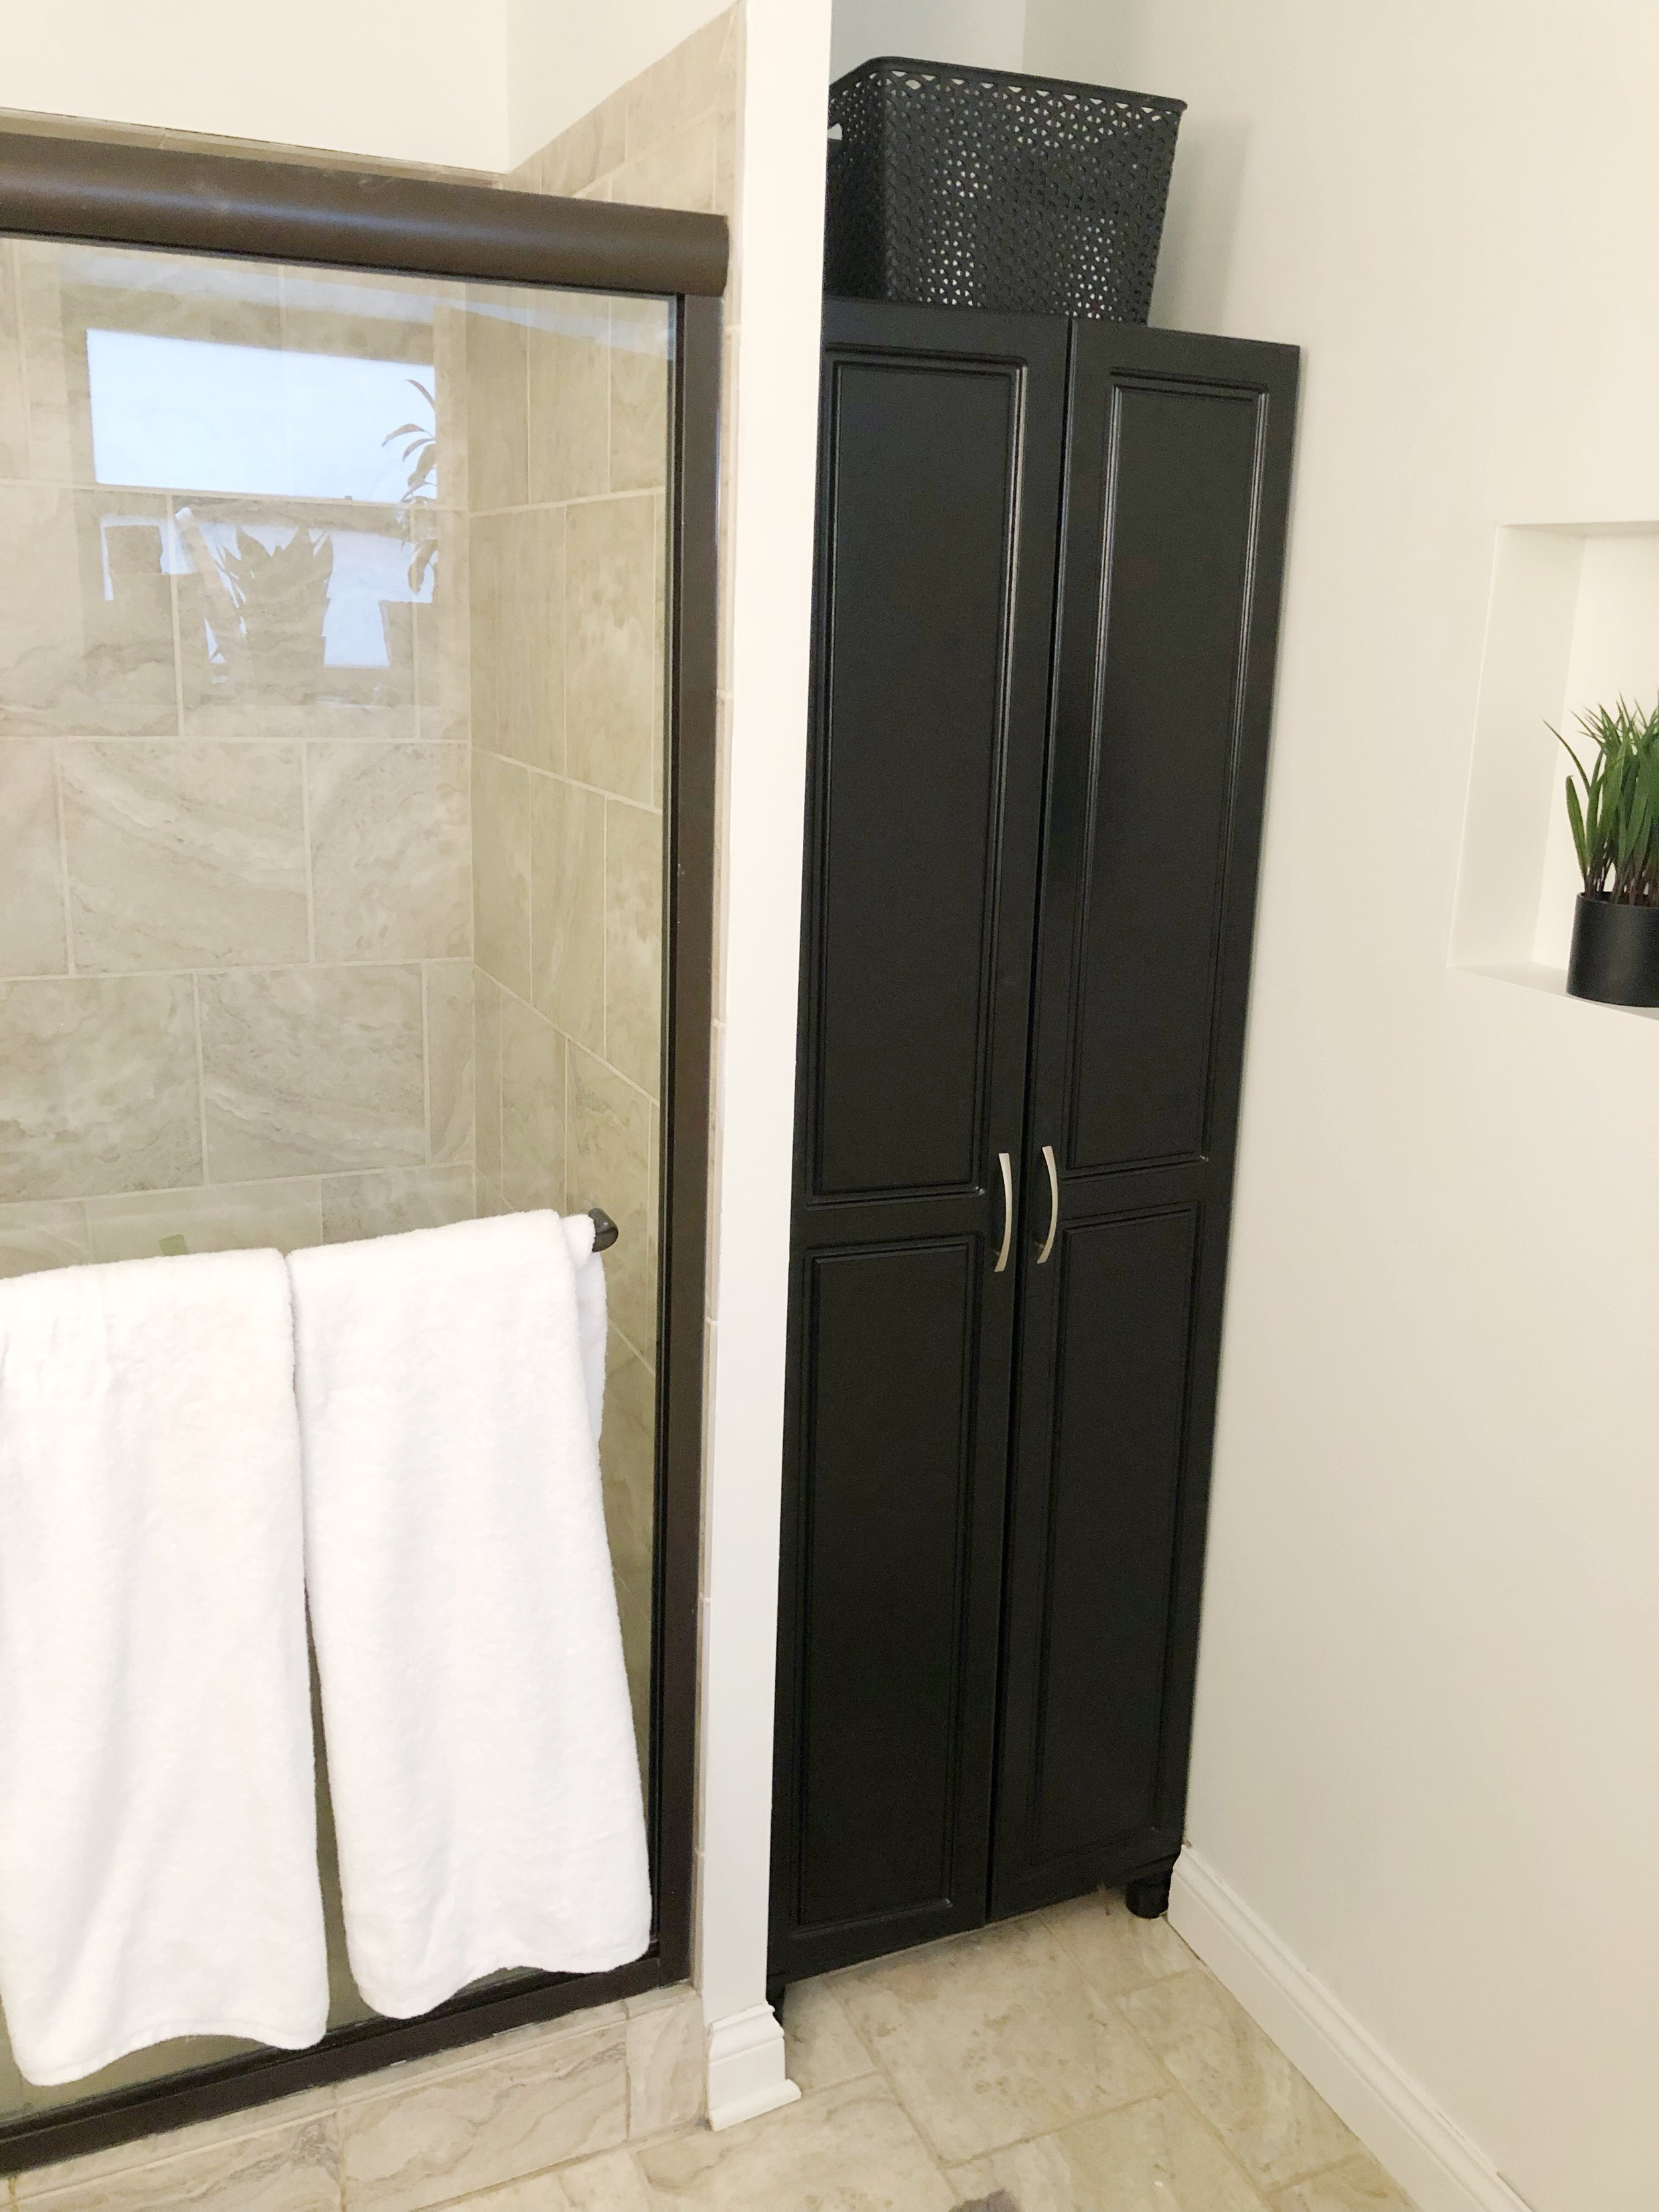 The Scholl cabinet next to the shower really helps hide the unsightly bathroom things. I also hung fresh white towels on the built-in towel rod. I thought, since we have glass doors, this helps to cover up our shampoo / body wash situation inside the shower.